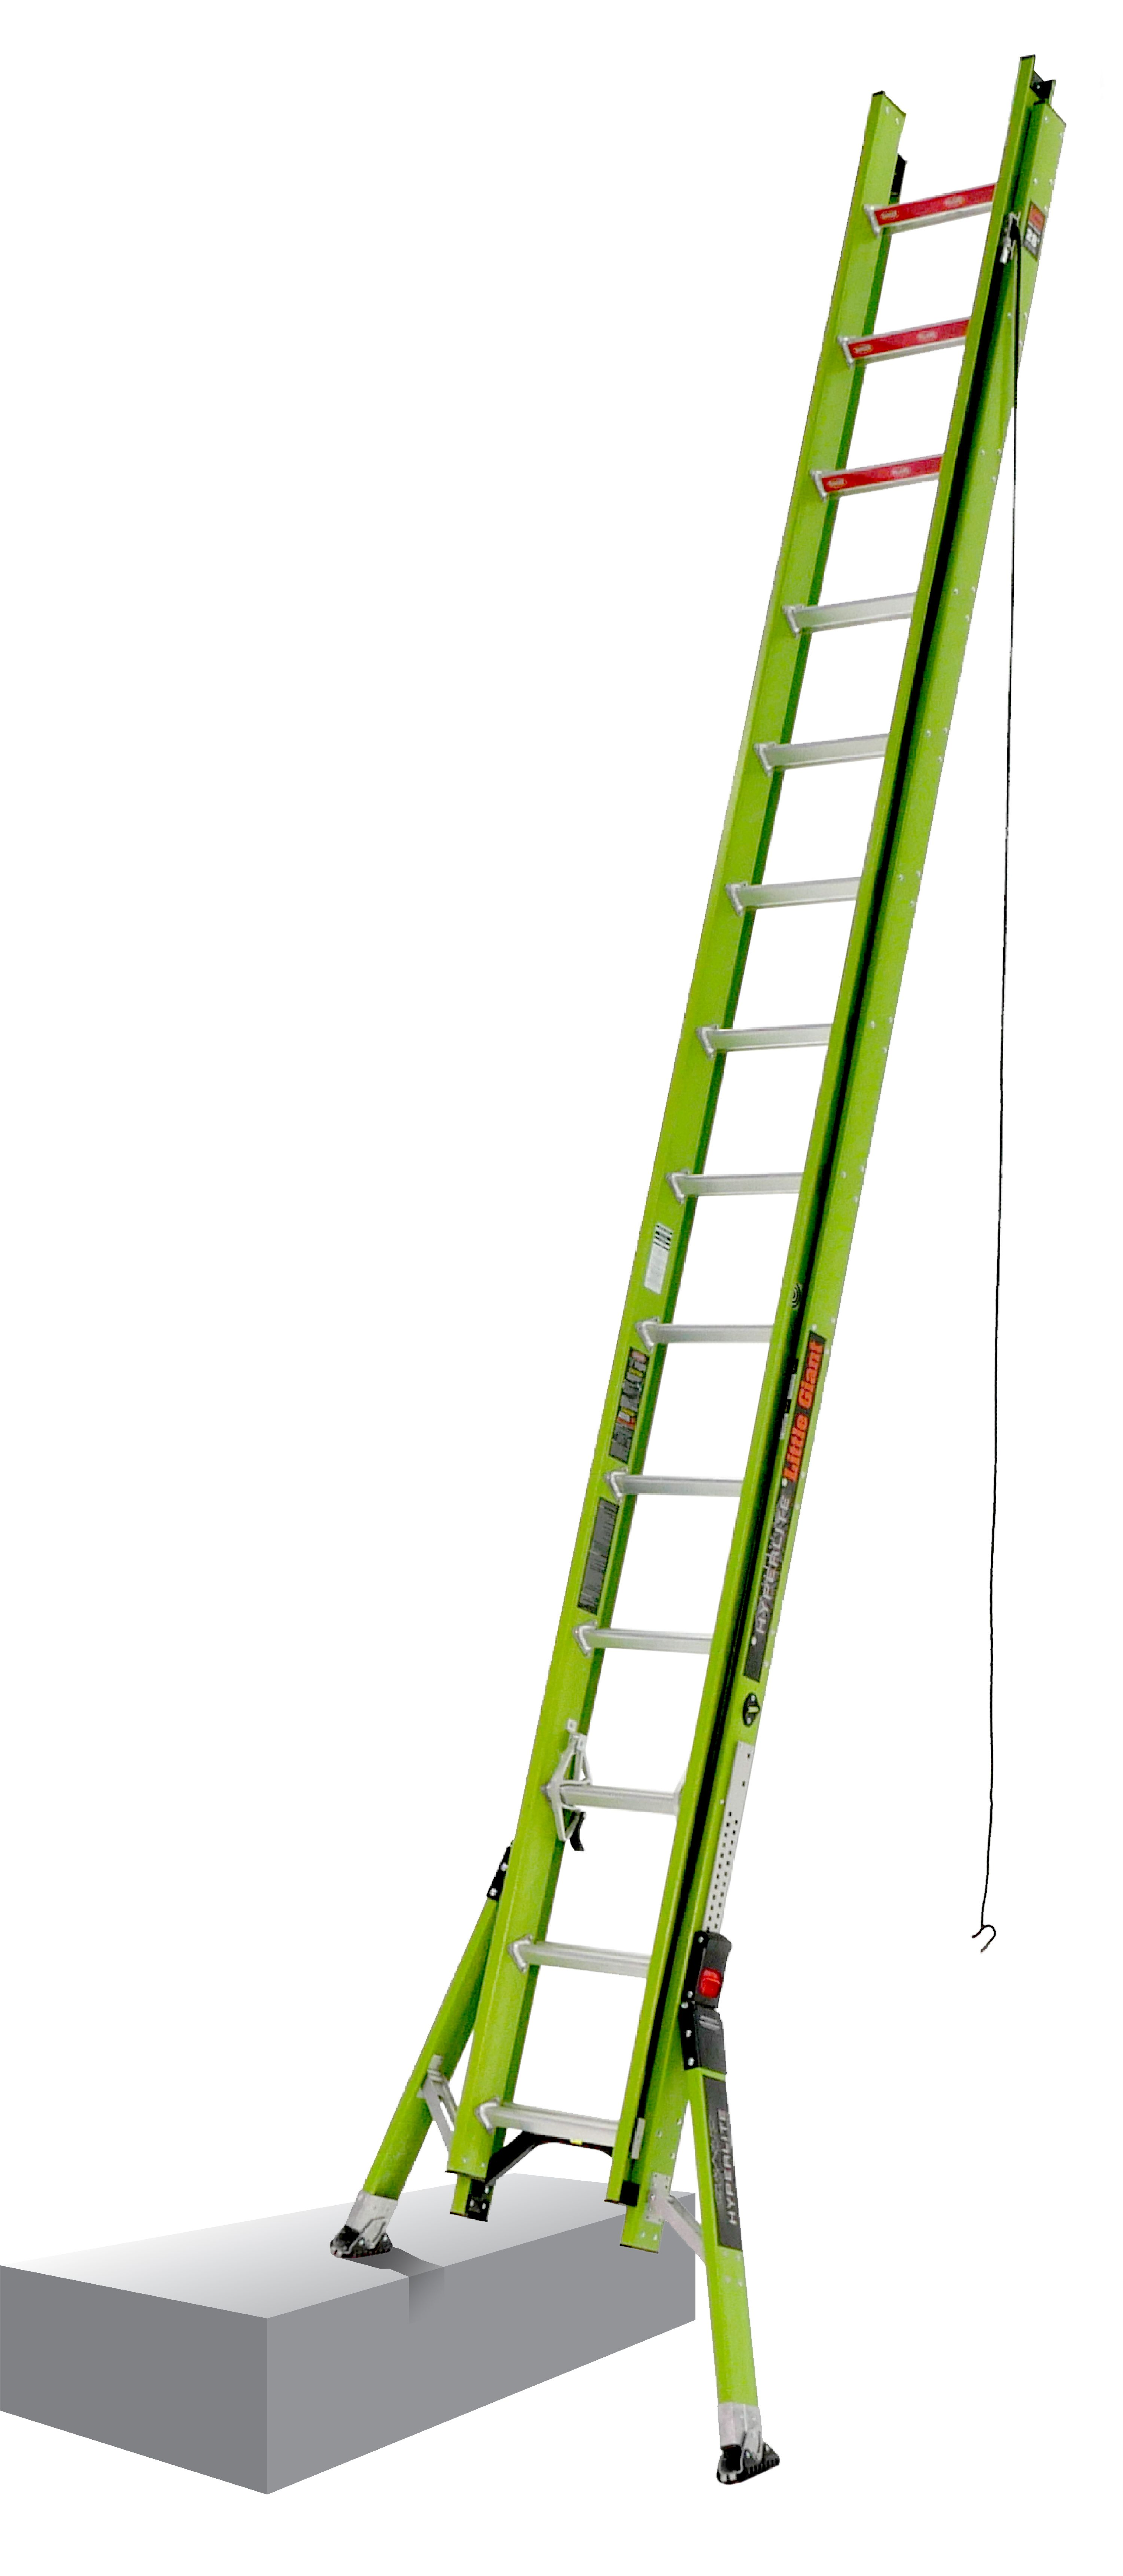 Little Giant HyperLite SumoStance, 28' Type IA 300 lbs rated, fiberglass extension ladder by Wing Enterprises, Inc.